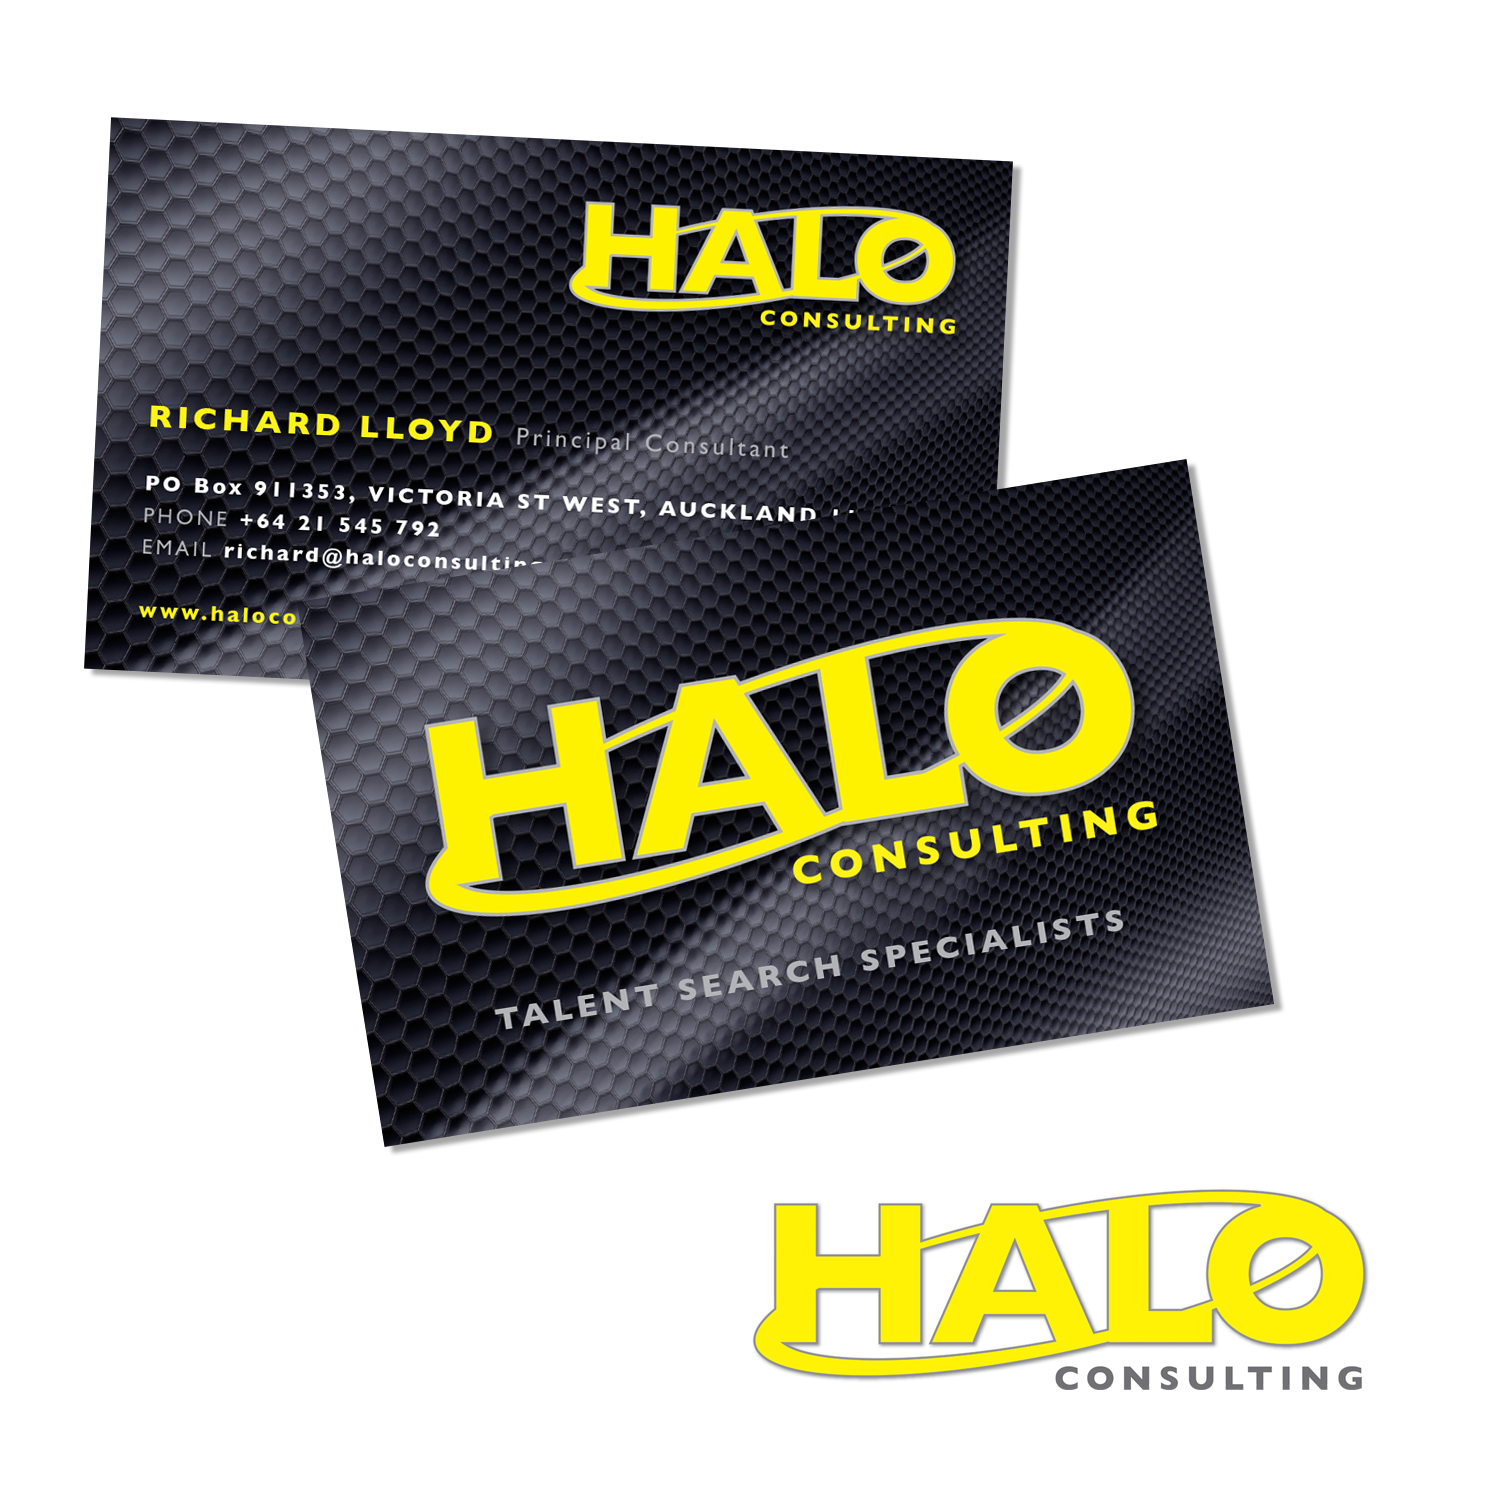 LOGO & BUSINESS CARD DESIGN FOR HALO CONSULTING